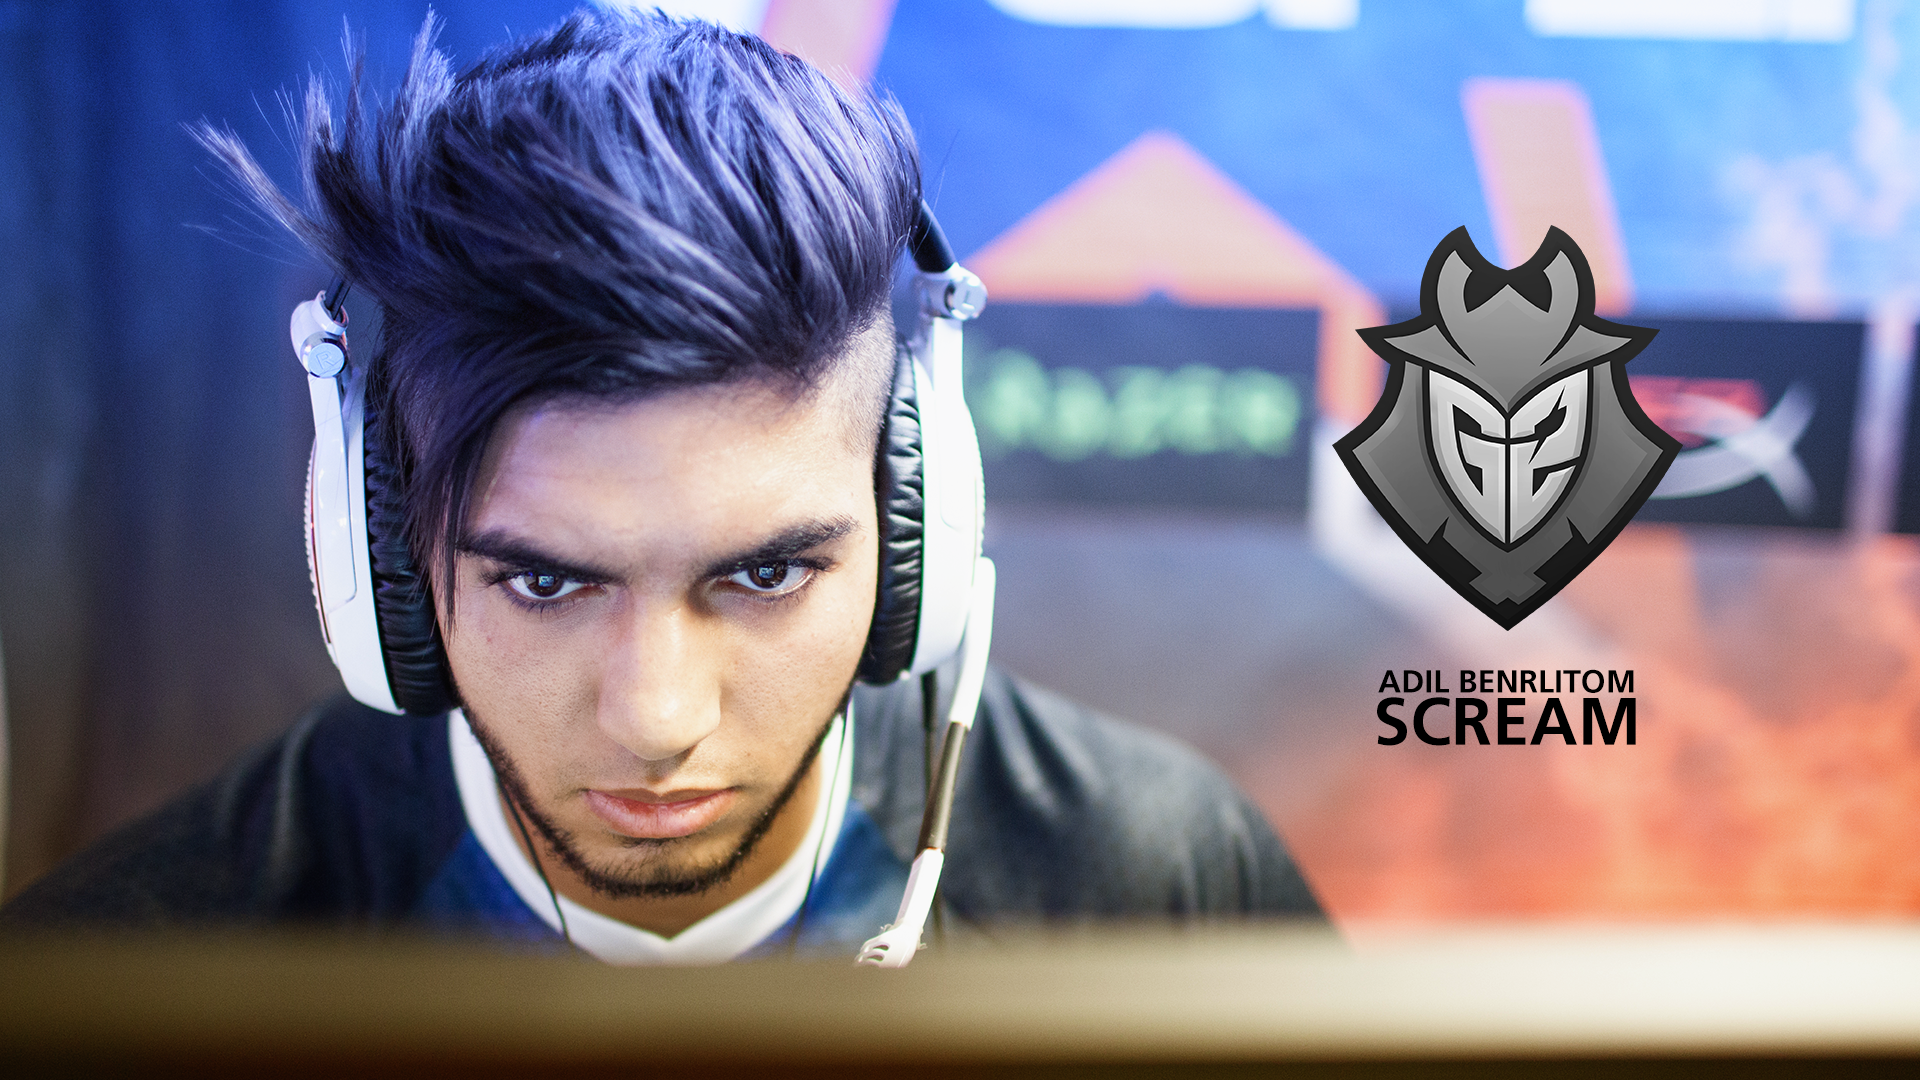 Csgo Wallpaper Hd Scream Blue Cs Go Wallpapers And Backgrounds